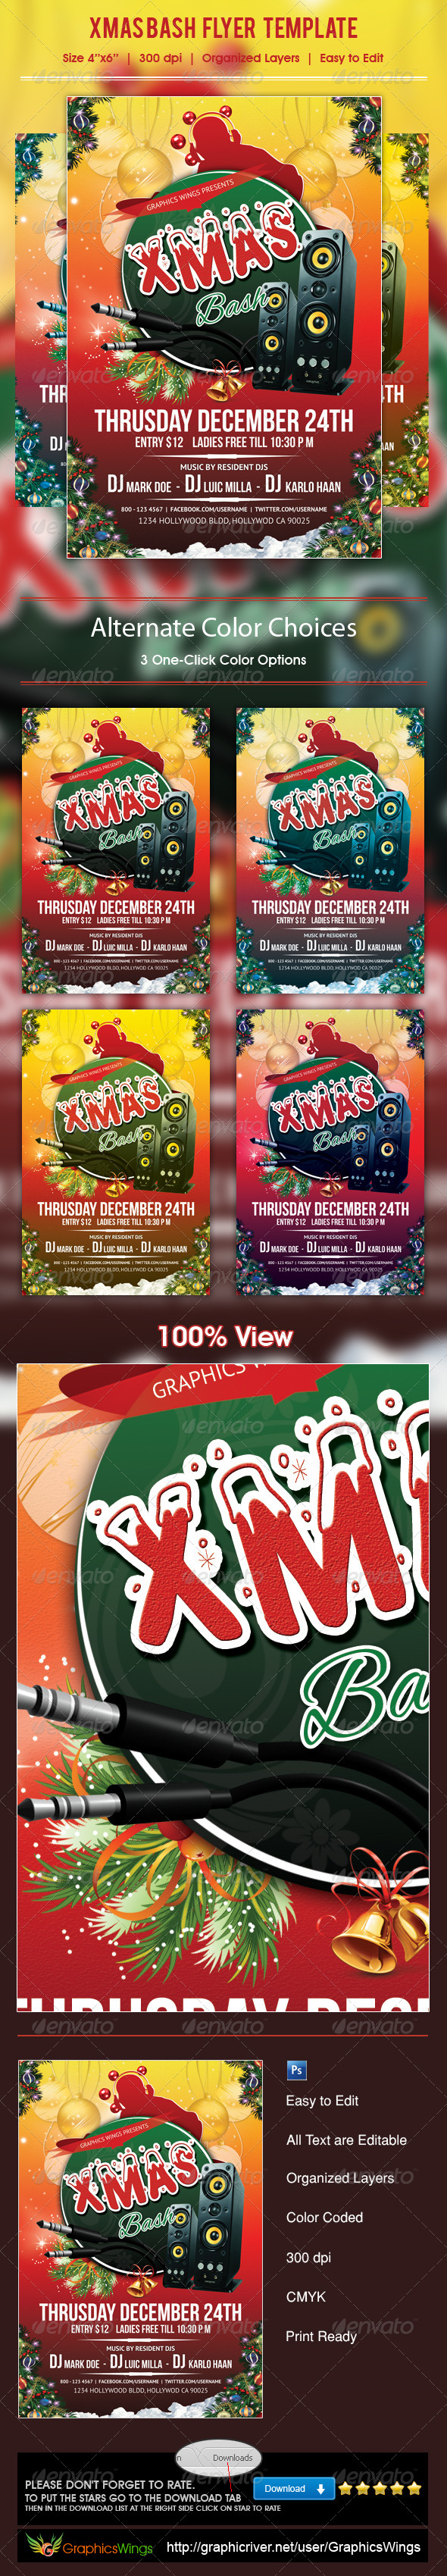 GraphicRiver Xmas Bash Flyer Template 6100392